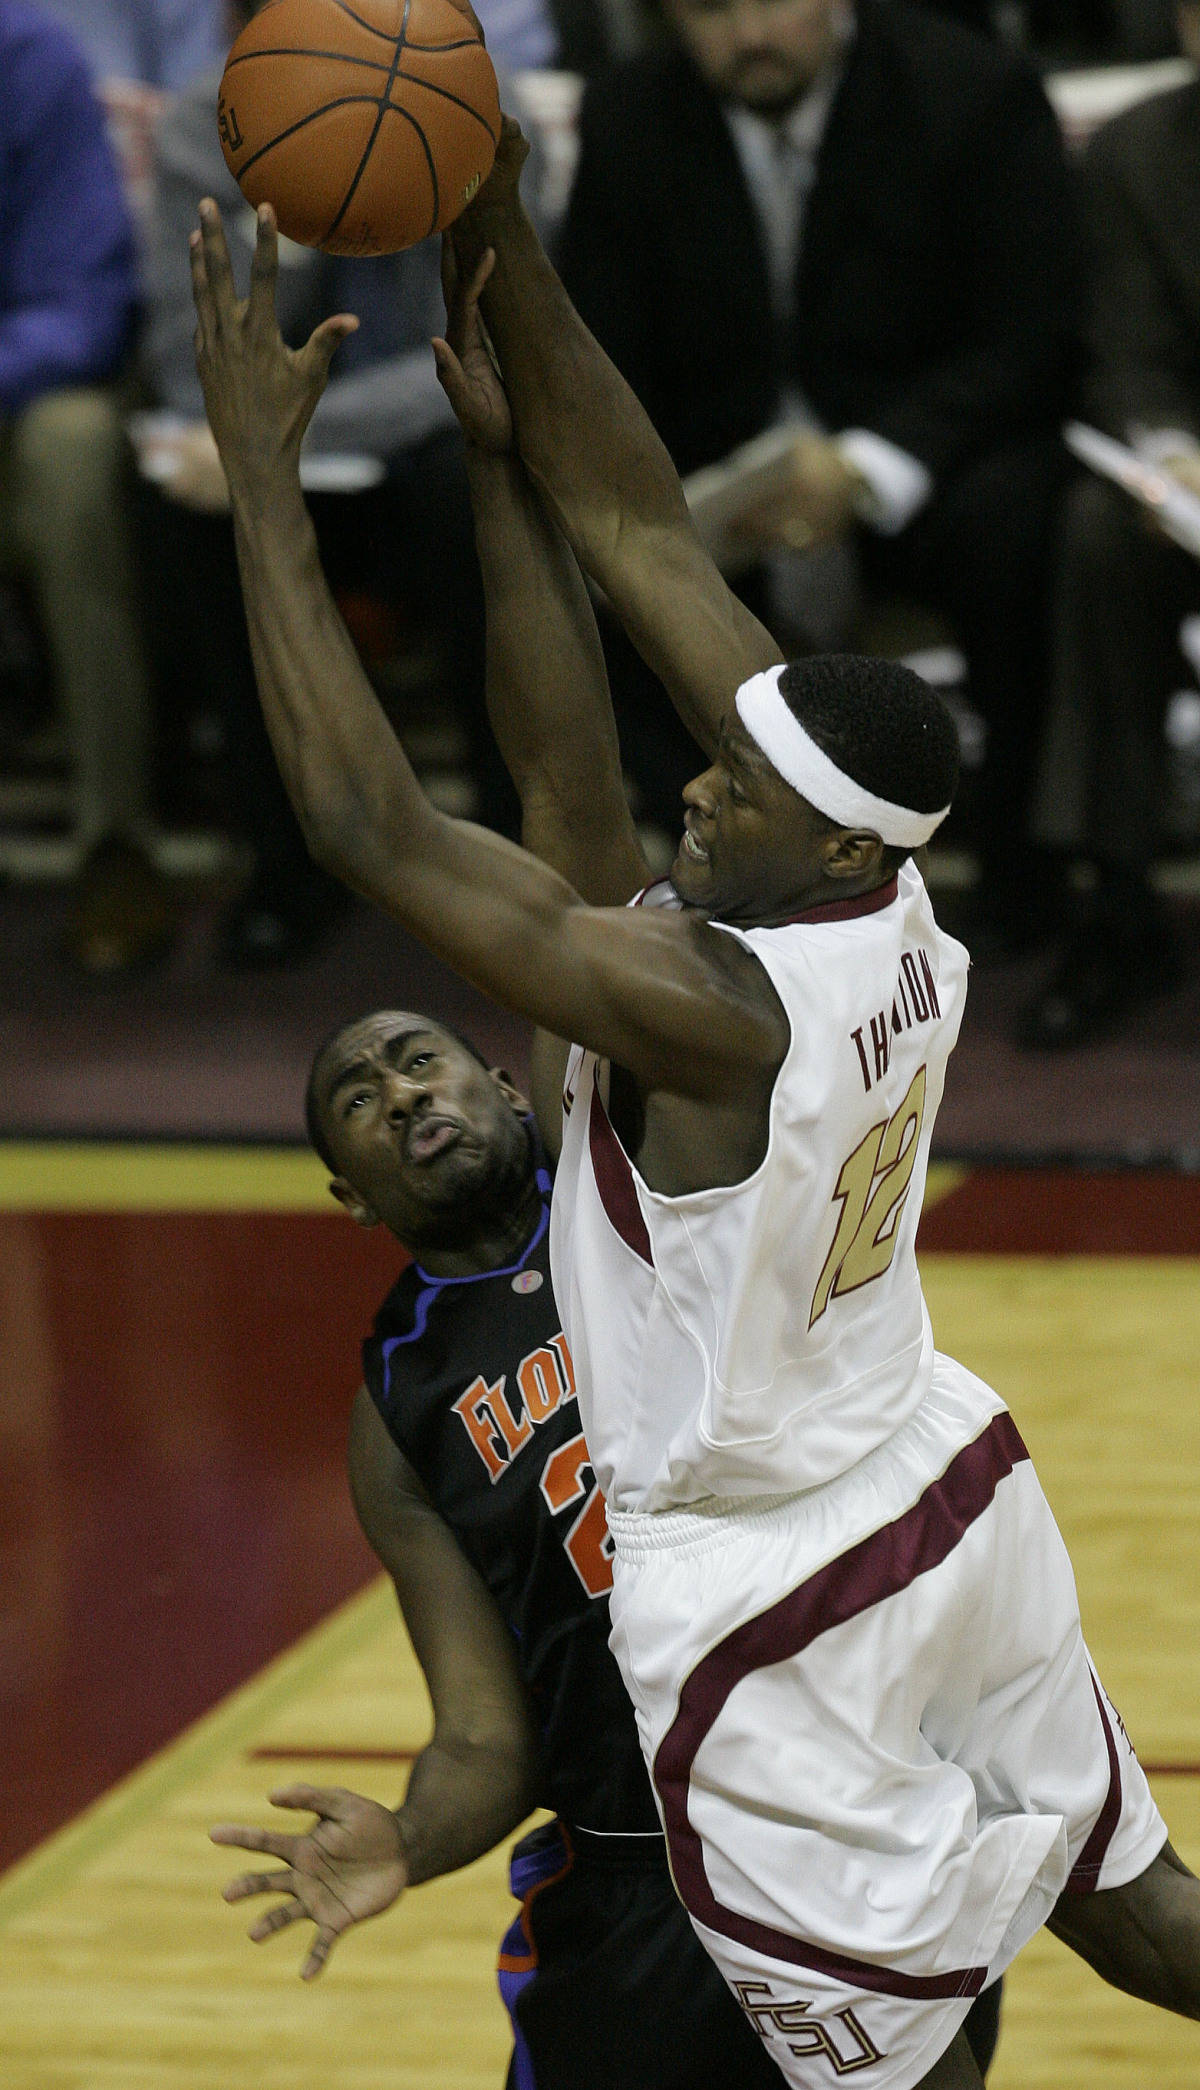 Florida State's Al Thornton, right, drives to the basket despite the defensive efforts of Florida's Jonathan Mitchell, left, during the first half of a college basketball game, Sunday, Dec. 3, 2006, in Tallahassee, Fla.(AP Photo/Phil Coale)